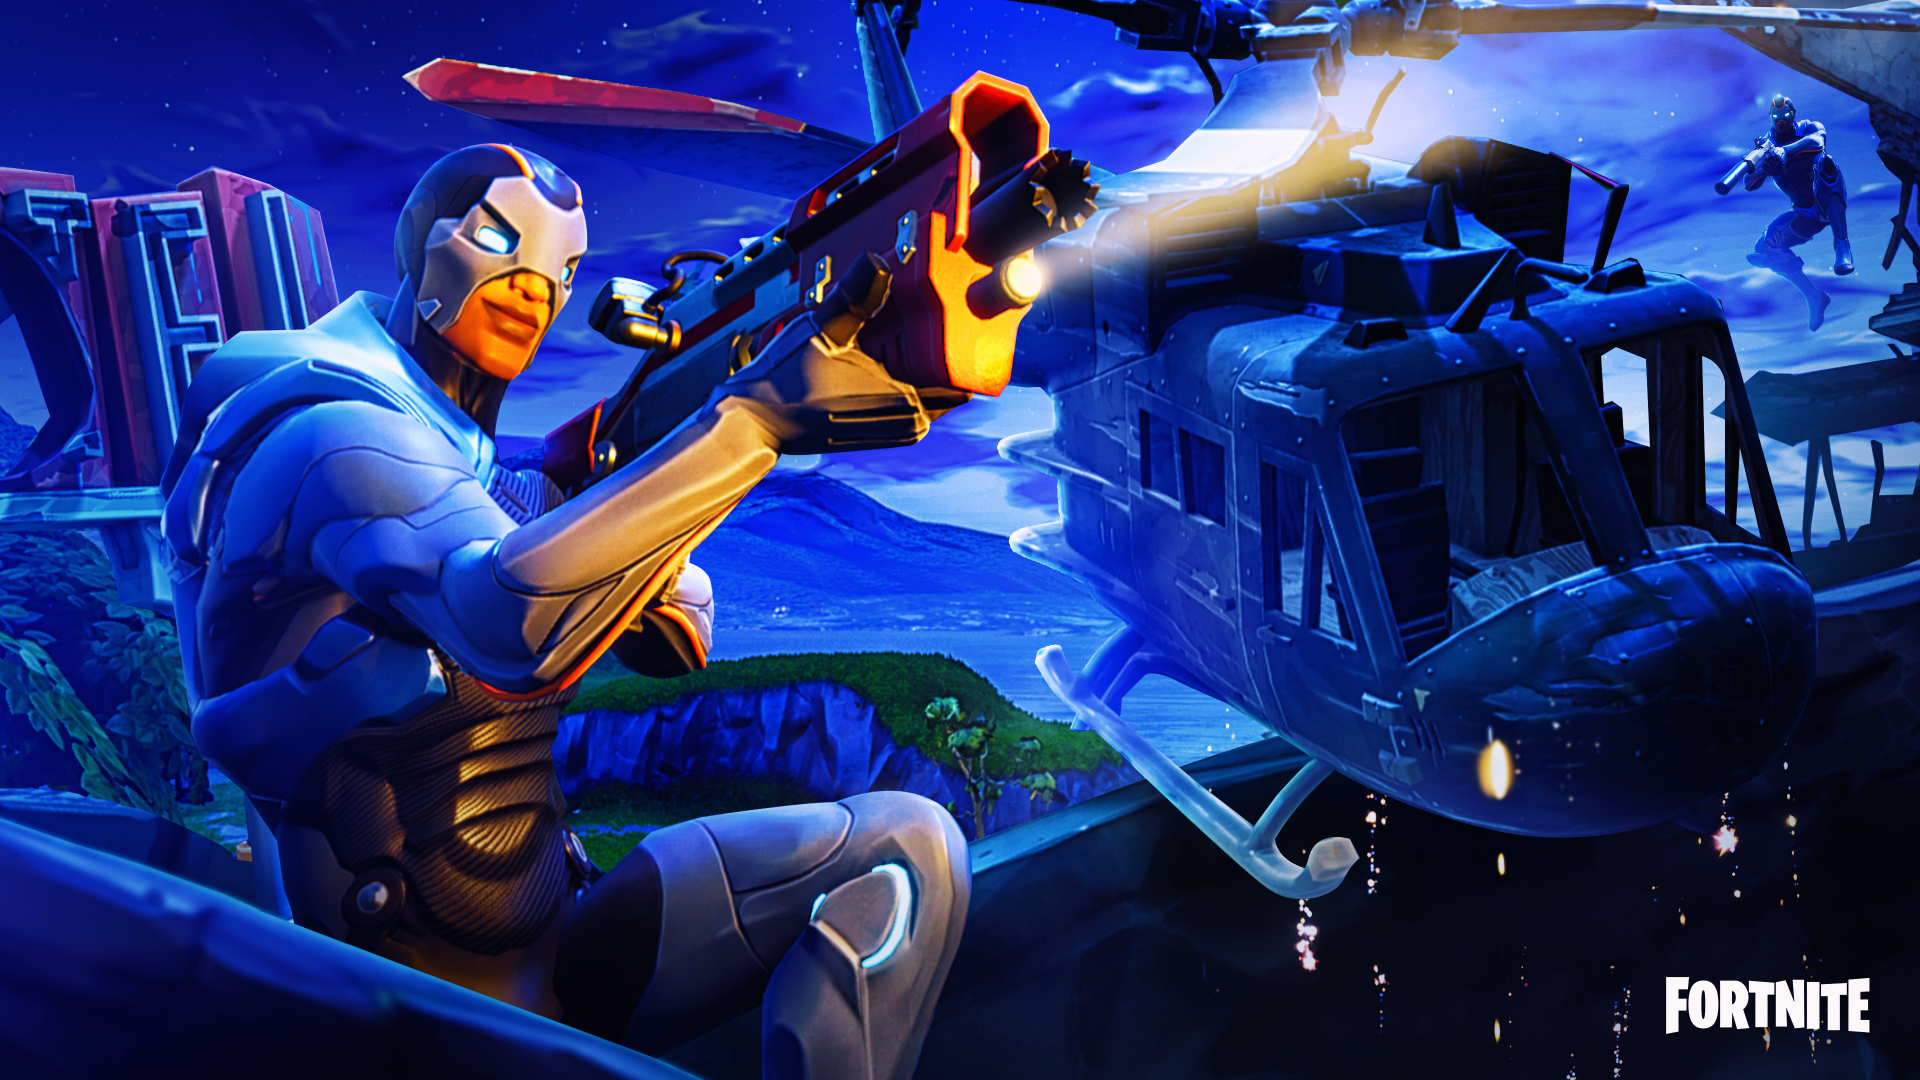 23 4k Ultra Hd Fortnite Battle Royale Wallpapers Background Images Wallpaper Abyss